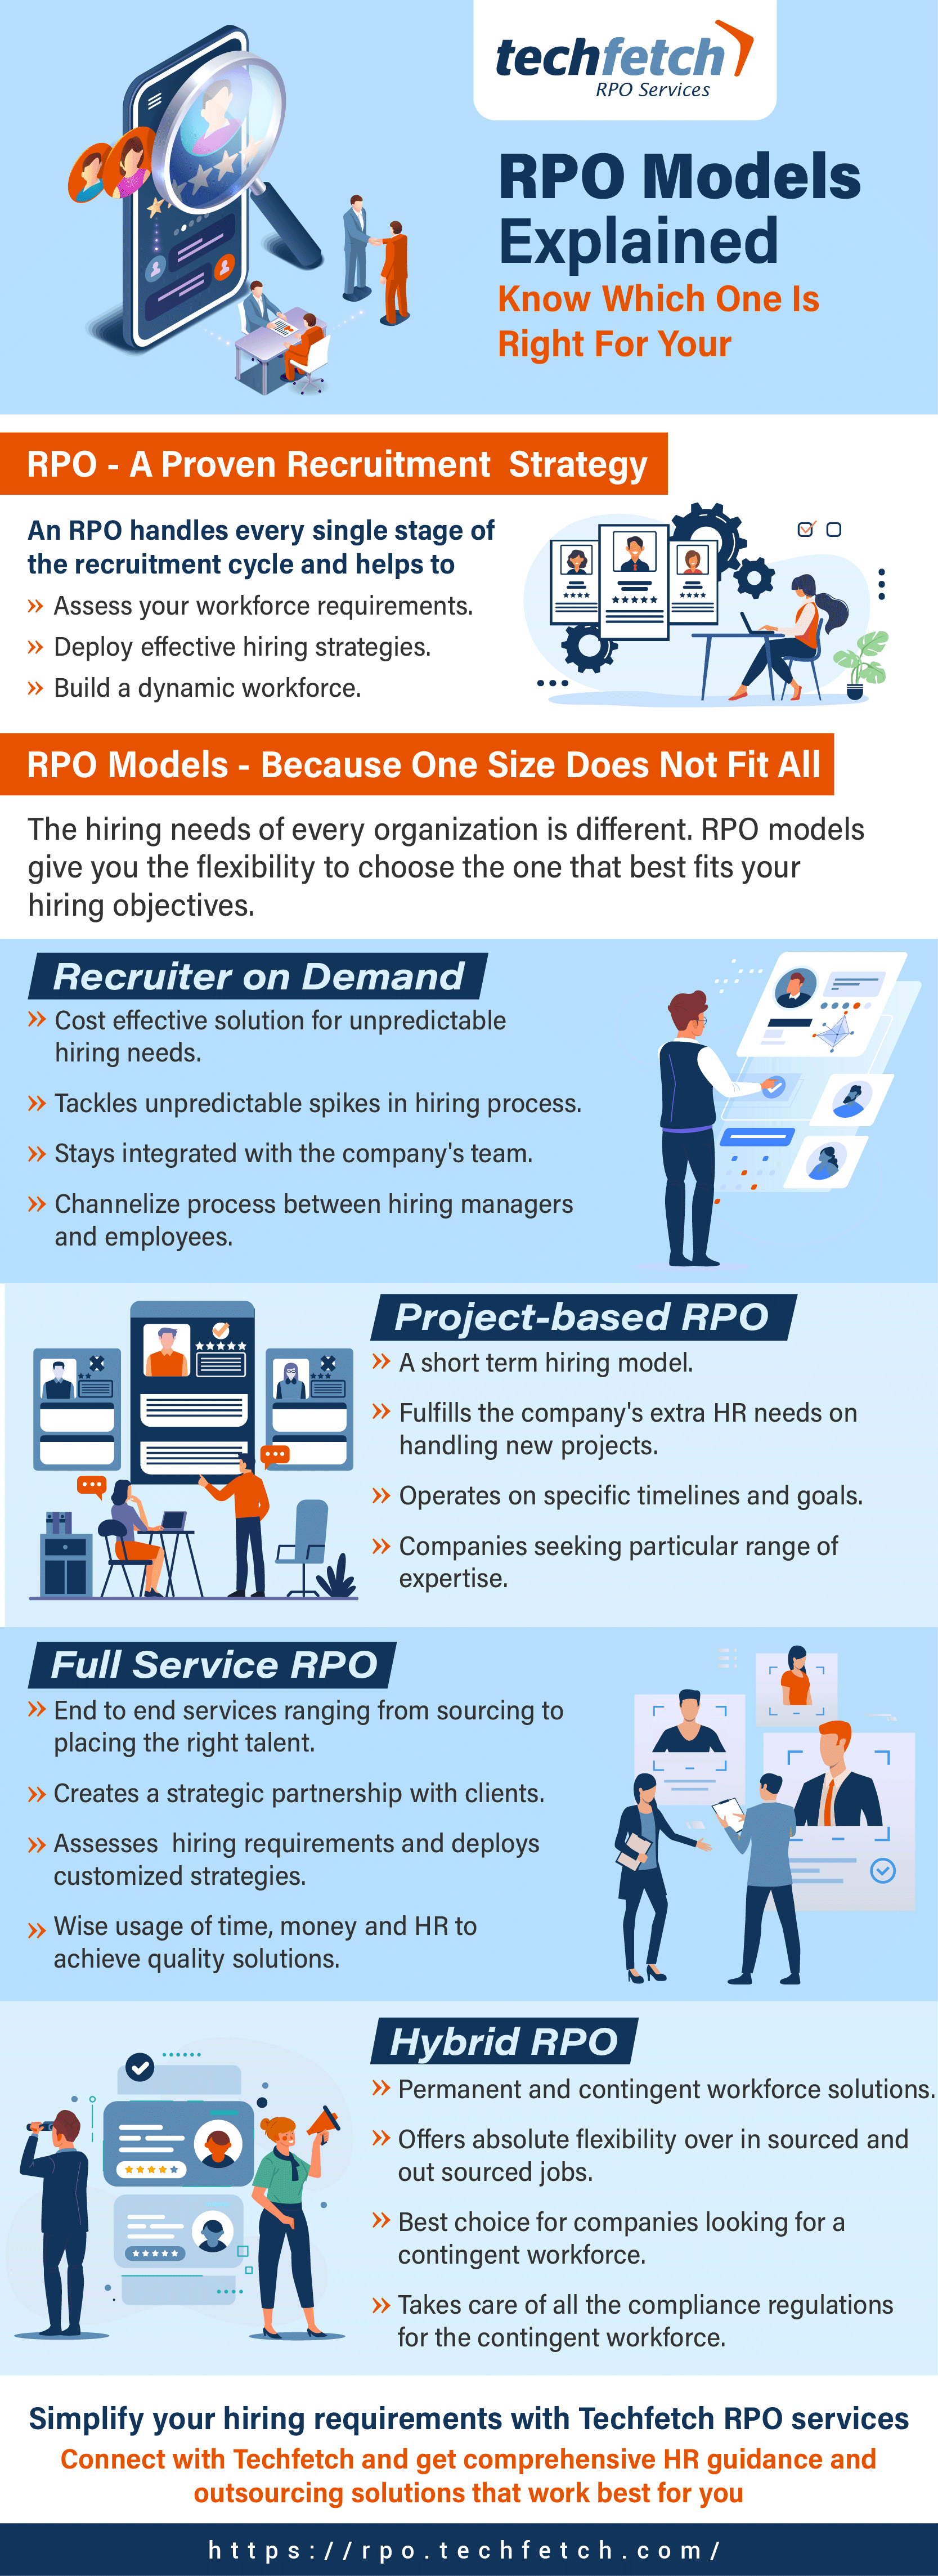 An infographic presenting the different recruitment process outsourcing approaches used by RPO firms to best address the hiring needs of organizations.